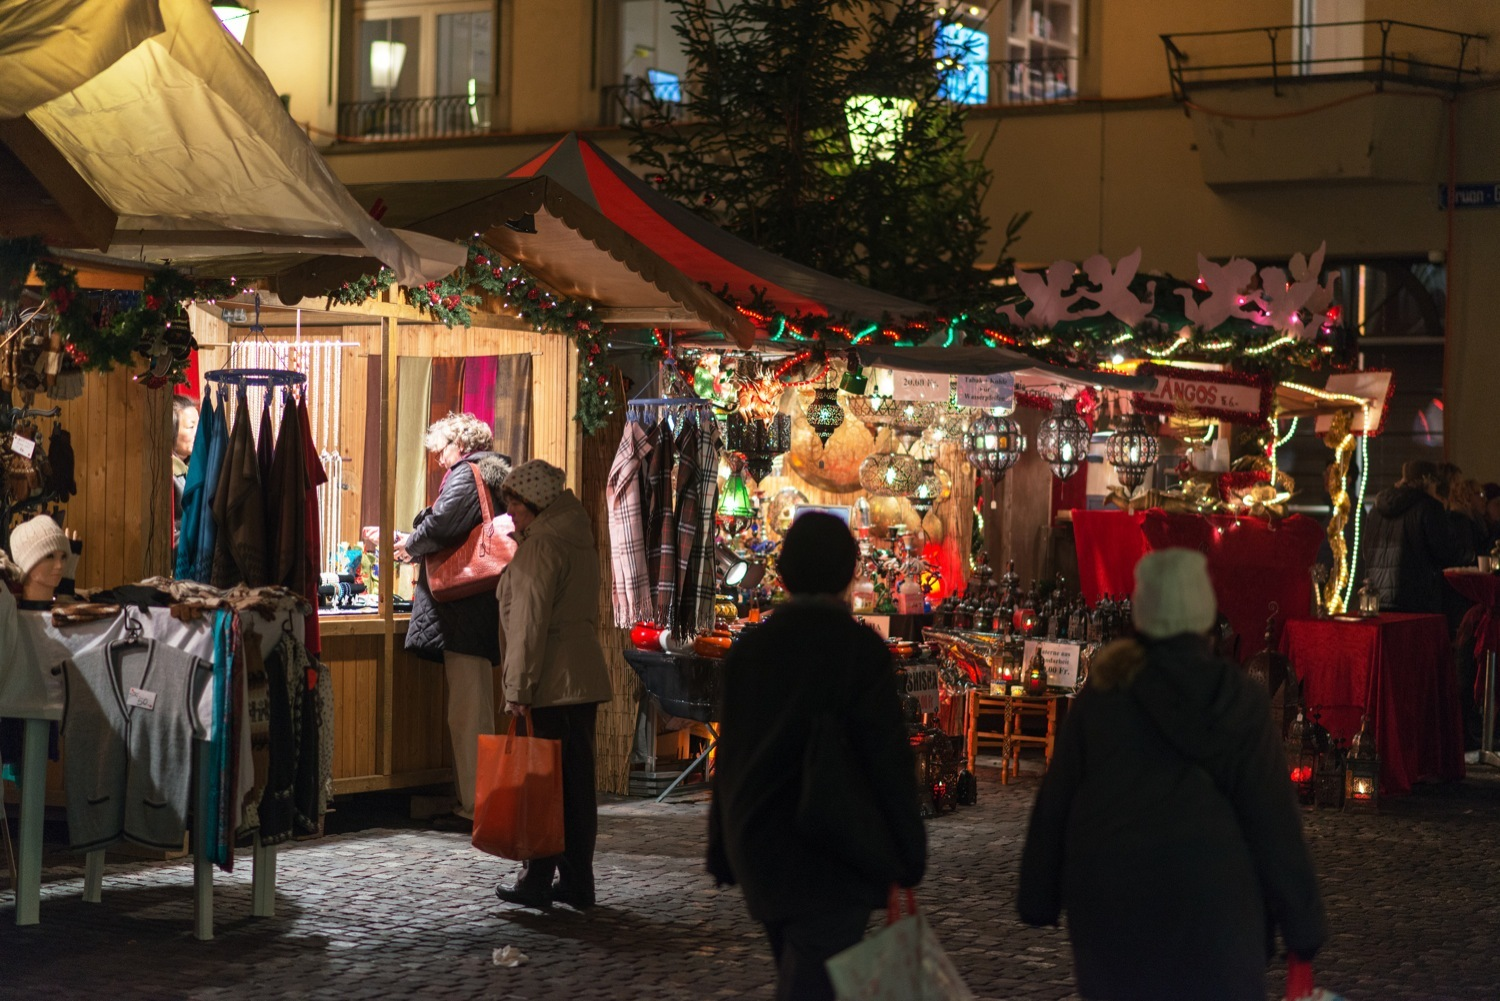 Christmas Market in the Old Town, Zürich